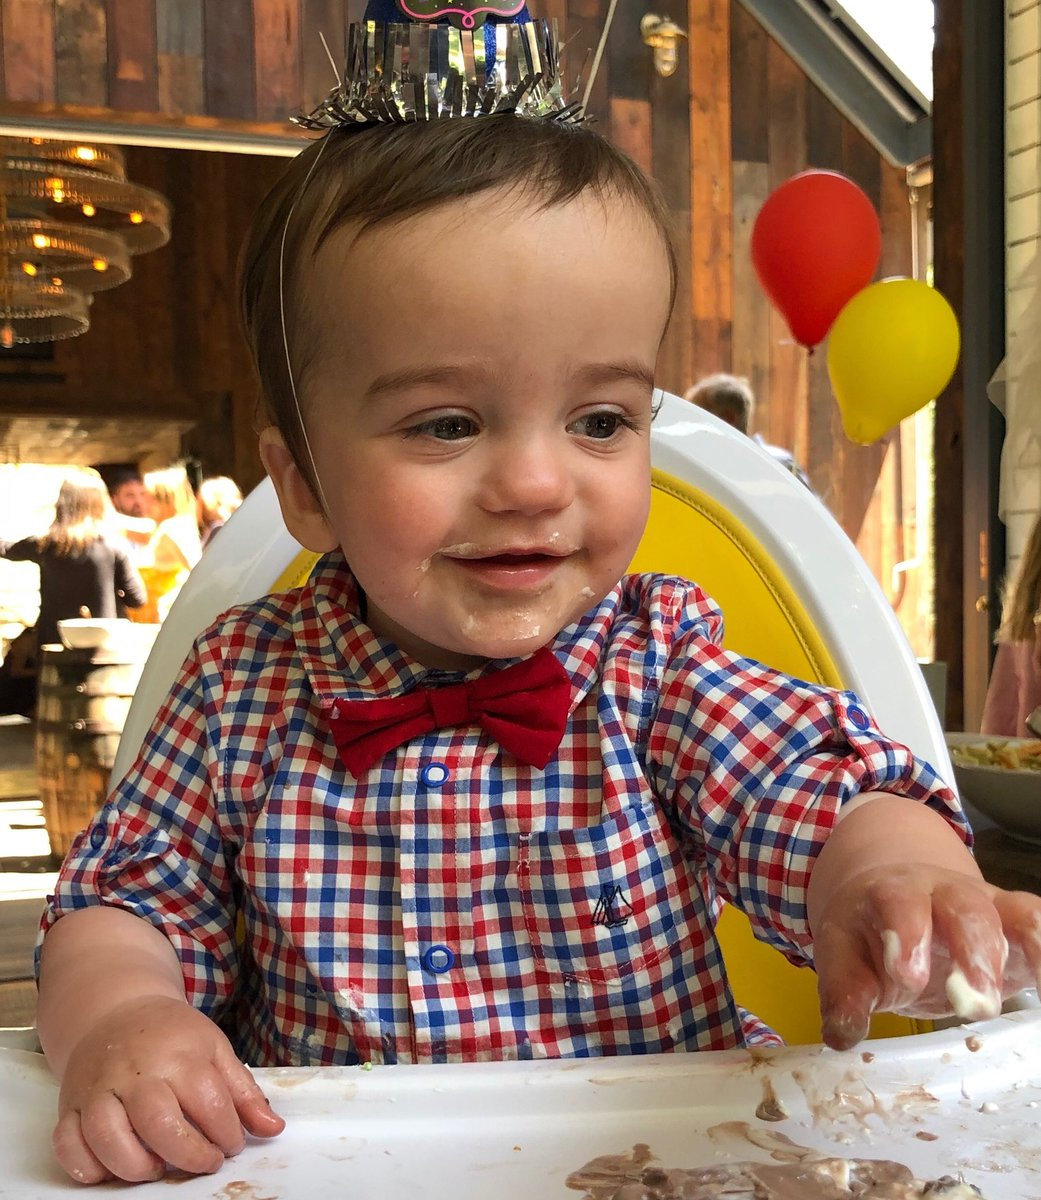 A yr ago today, God gave us this tough little boy. Today, we thank the nurses & doctors at @CedarsSinai & @ChildrensLA who saved his life & those who shared thoughts & prayers. We cannot stay quiet. Please wish Billy happy birthday by REGISTERING TO VOTE! vote.gov